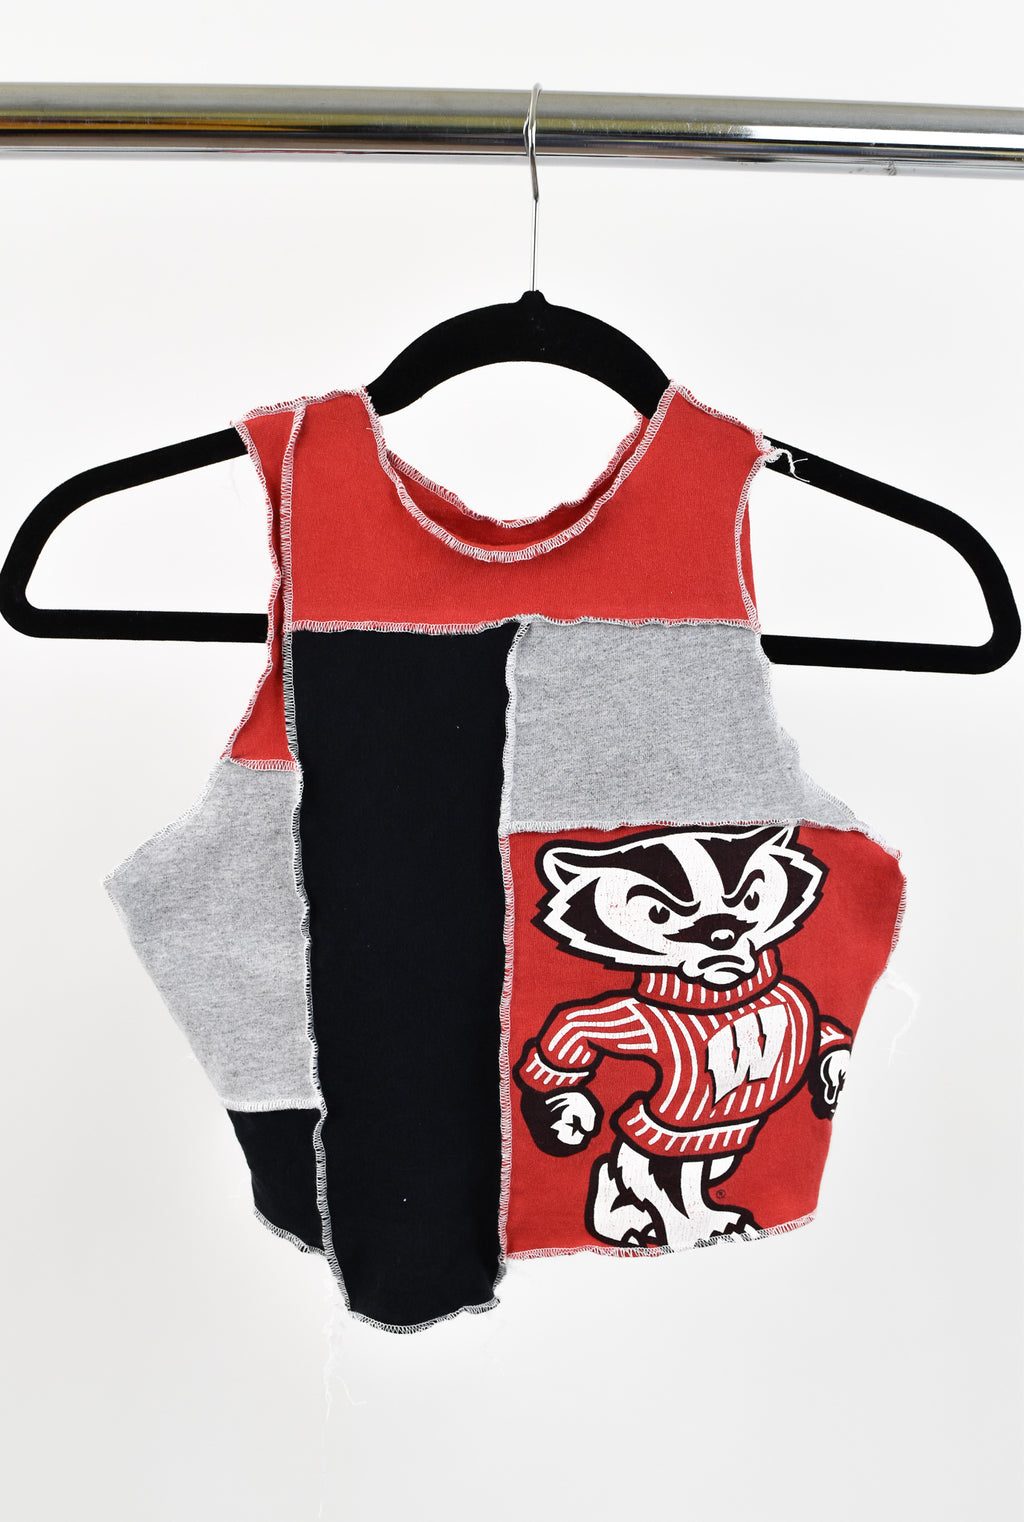 Upcycled University of Wisconsin Scrappy Top